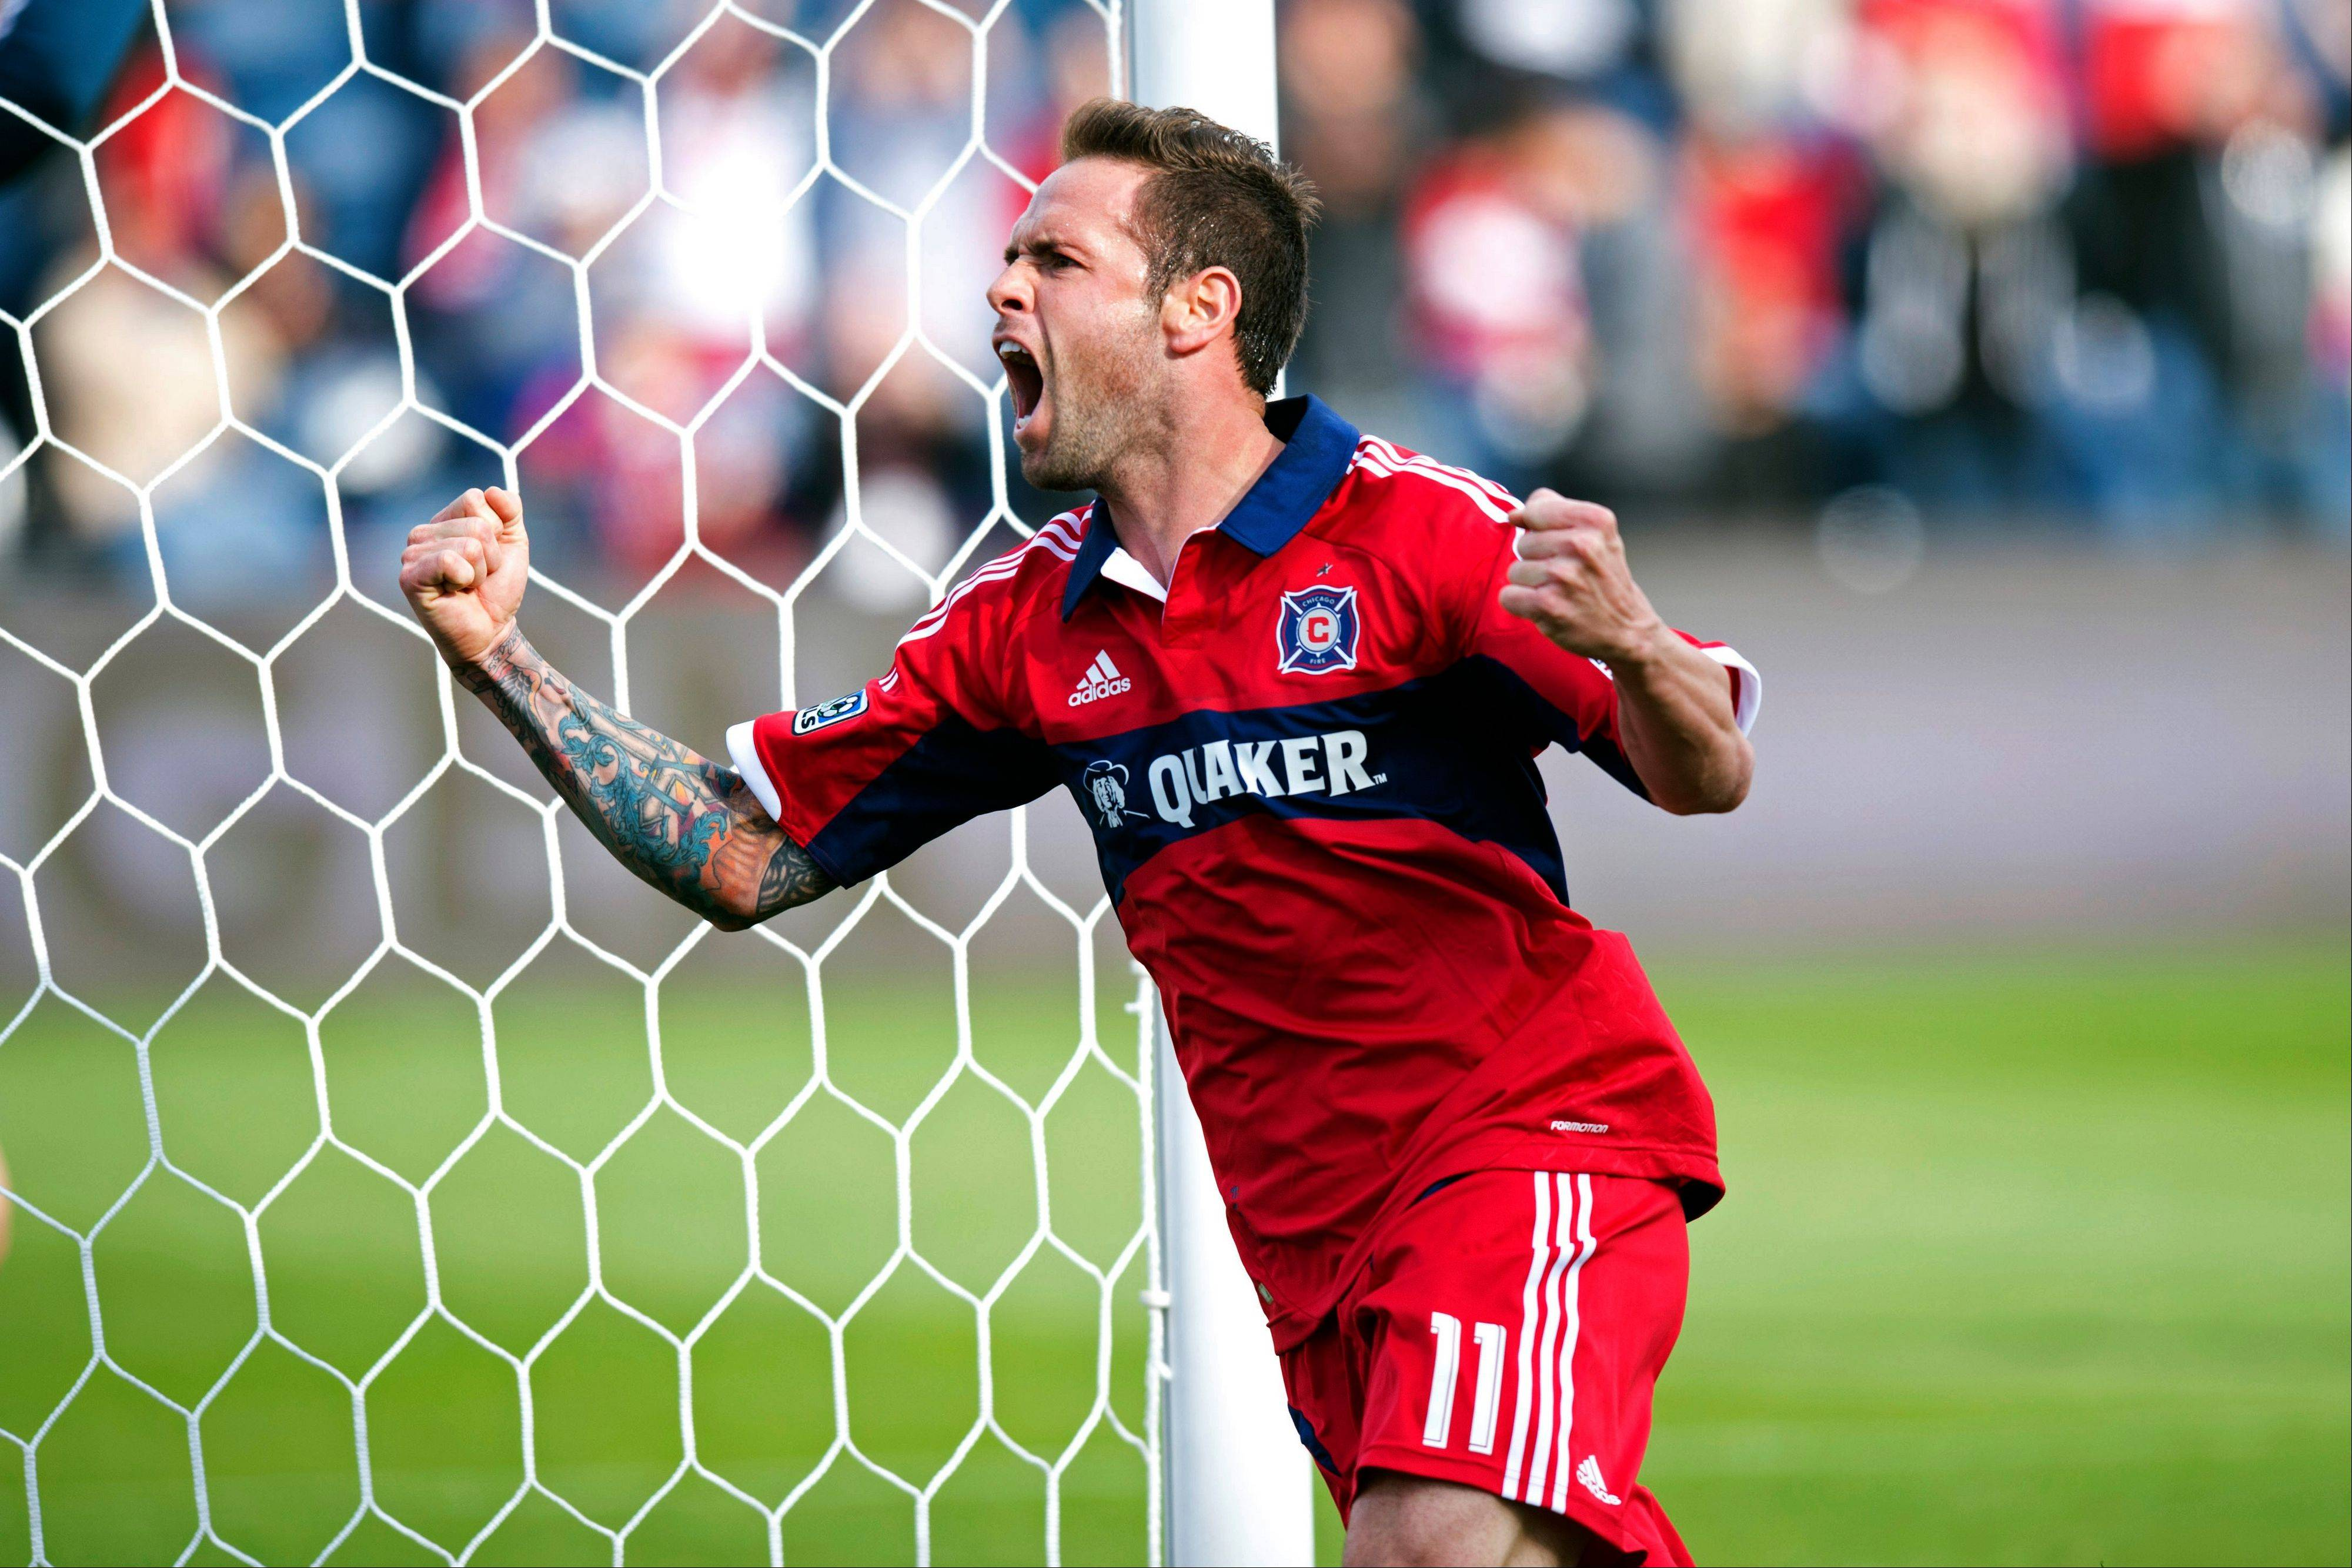 In this photo provided by the Chicago Fire, Chicago Fire forward Daniel Paladini celebrates his goal against the New York Red Bulls during the first half of an MLS soccer match, Sunday, April 7, 2013, in Bridgeview, Ill. The Fire won 3-1.